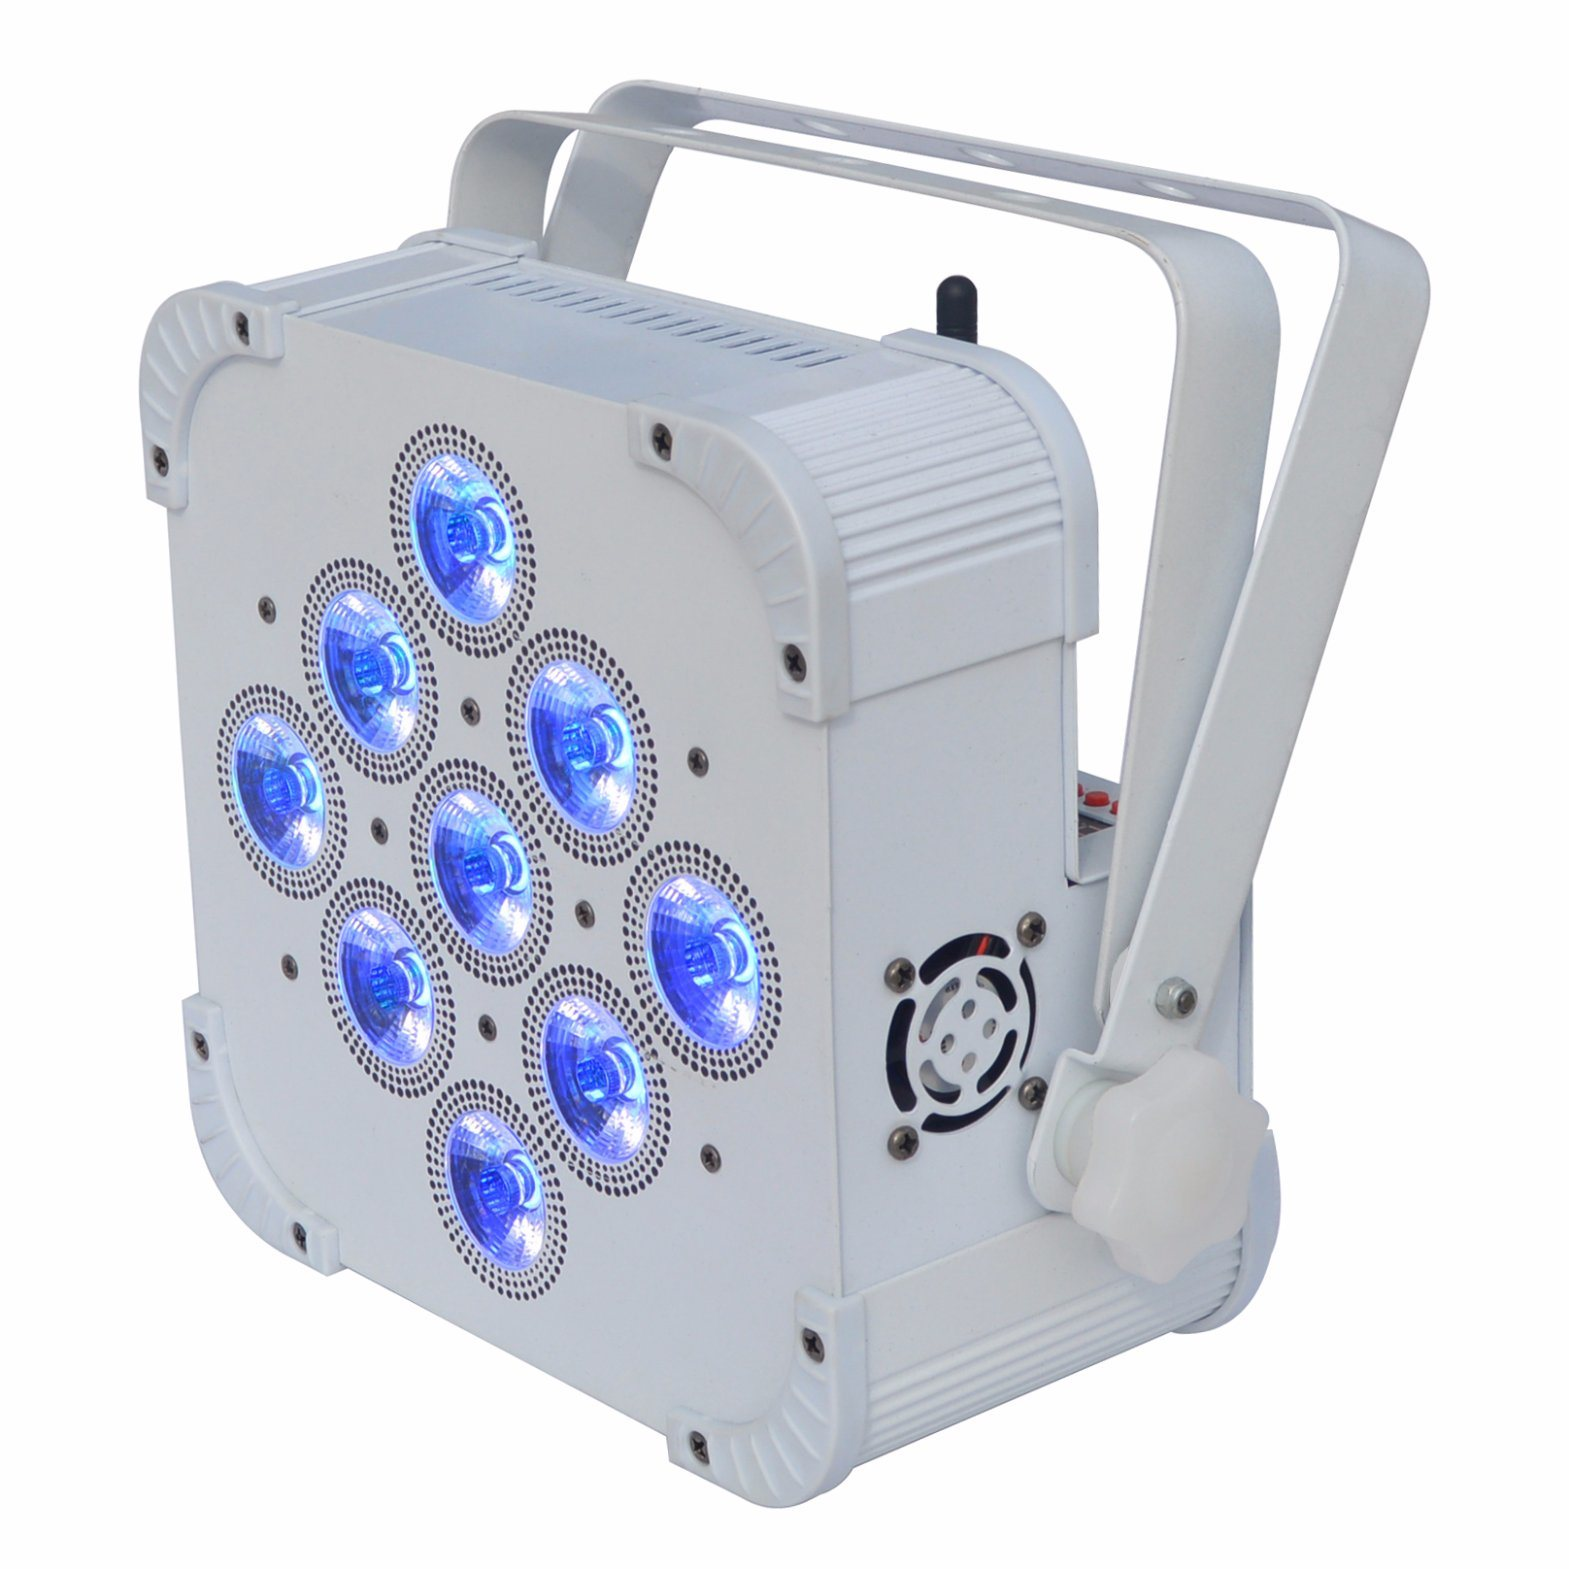 Wireless DMX LED Flat PAR Light 9 X 15W RGBWA 5in1 Color Mixing Non Waterproof IP20 No Battery pictures & photos